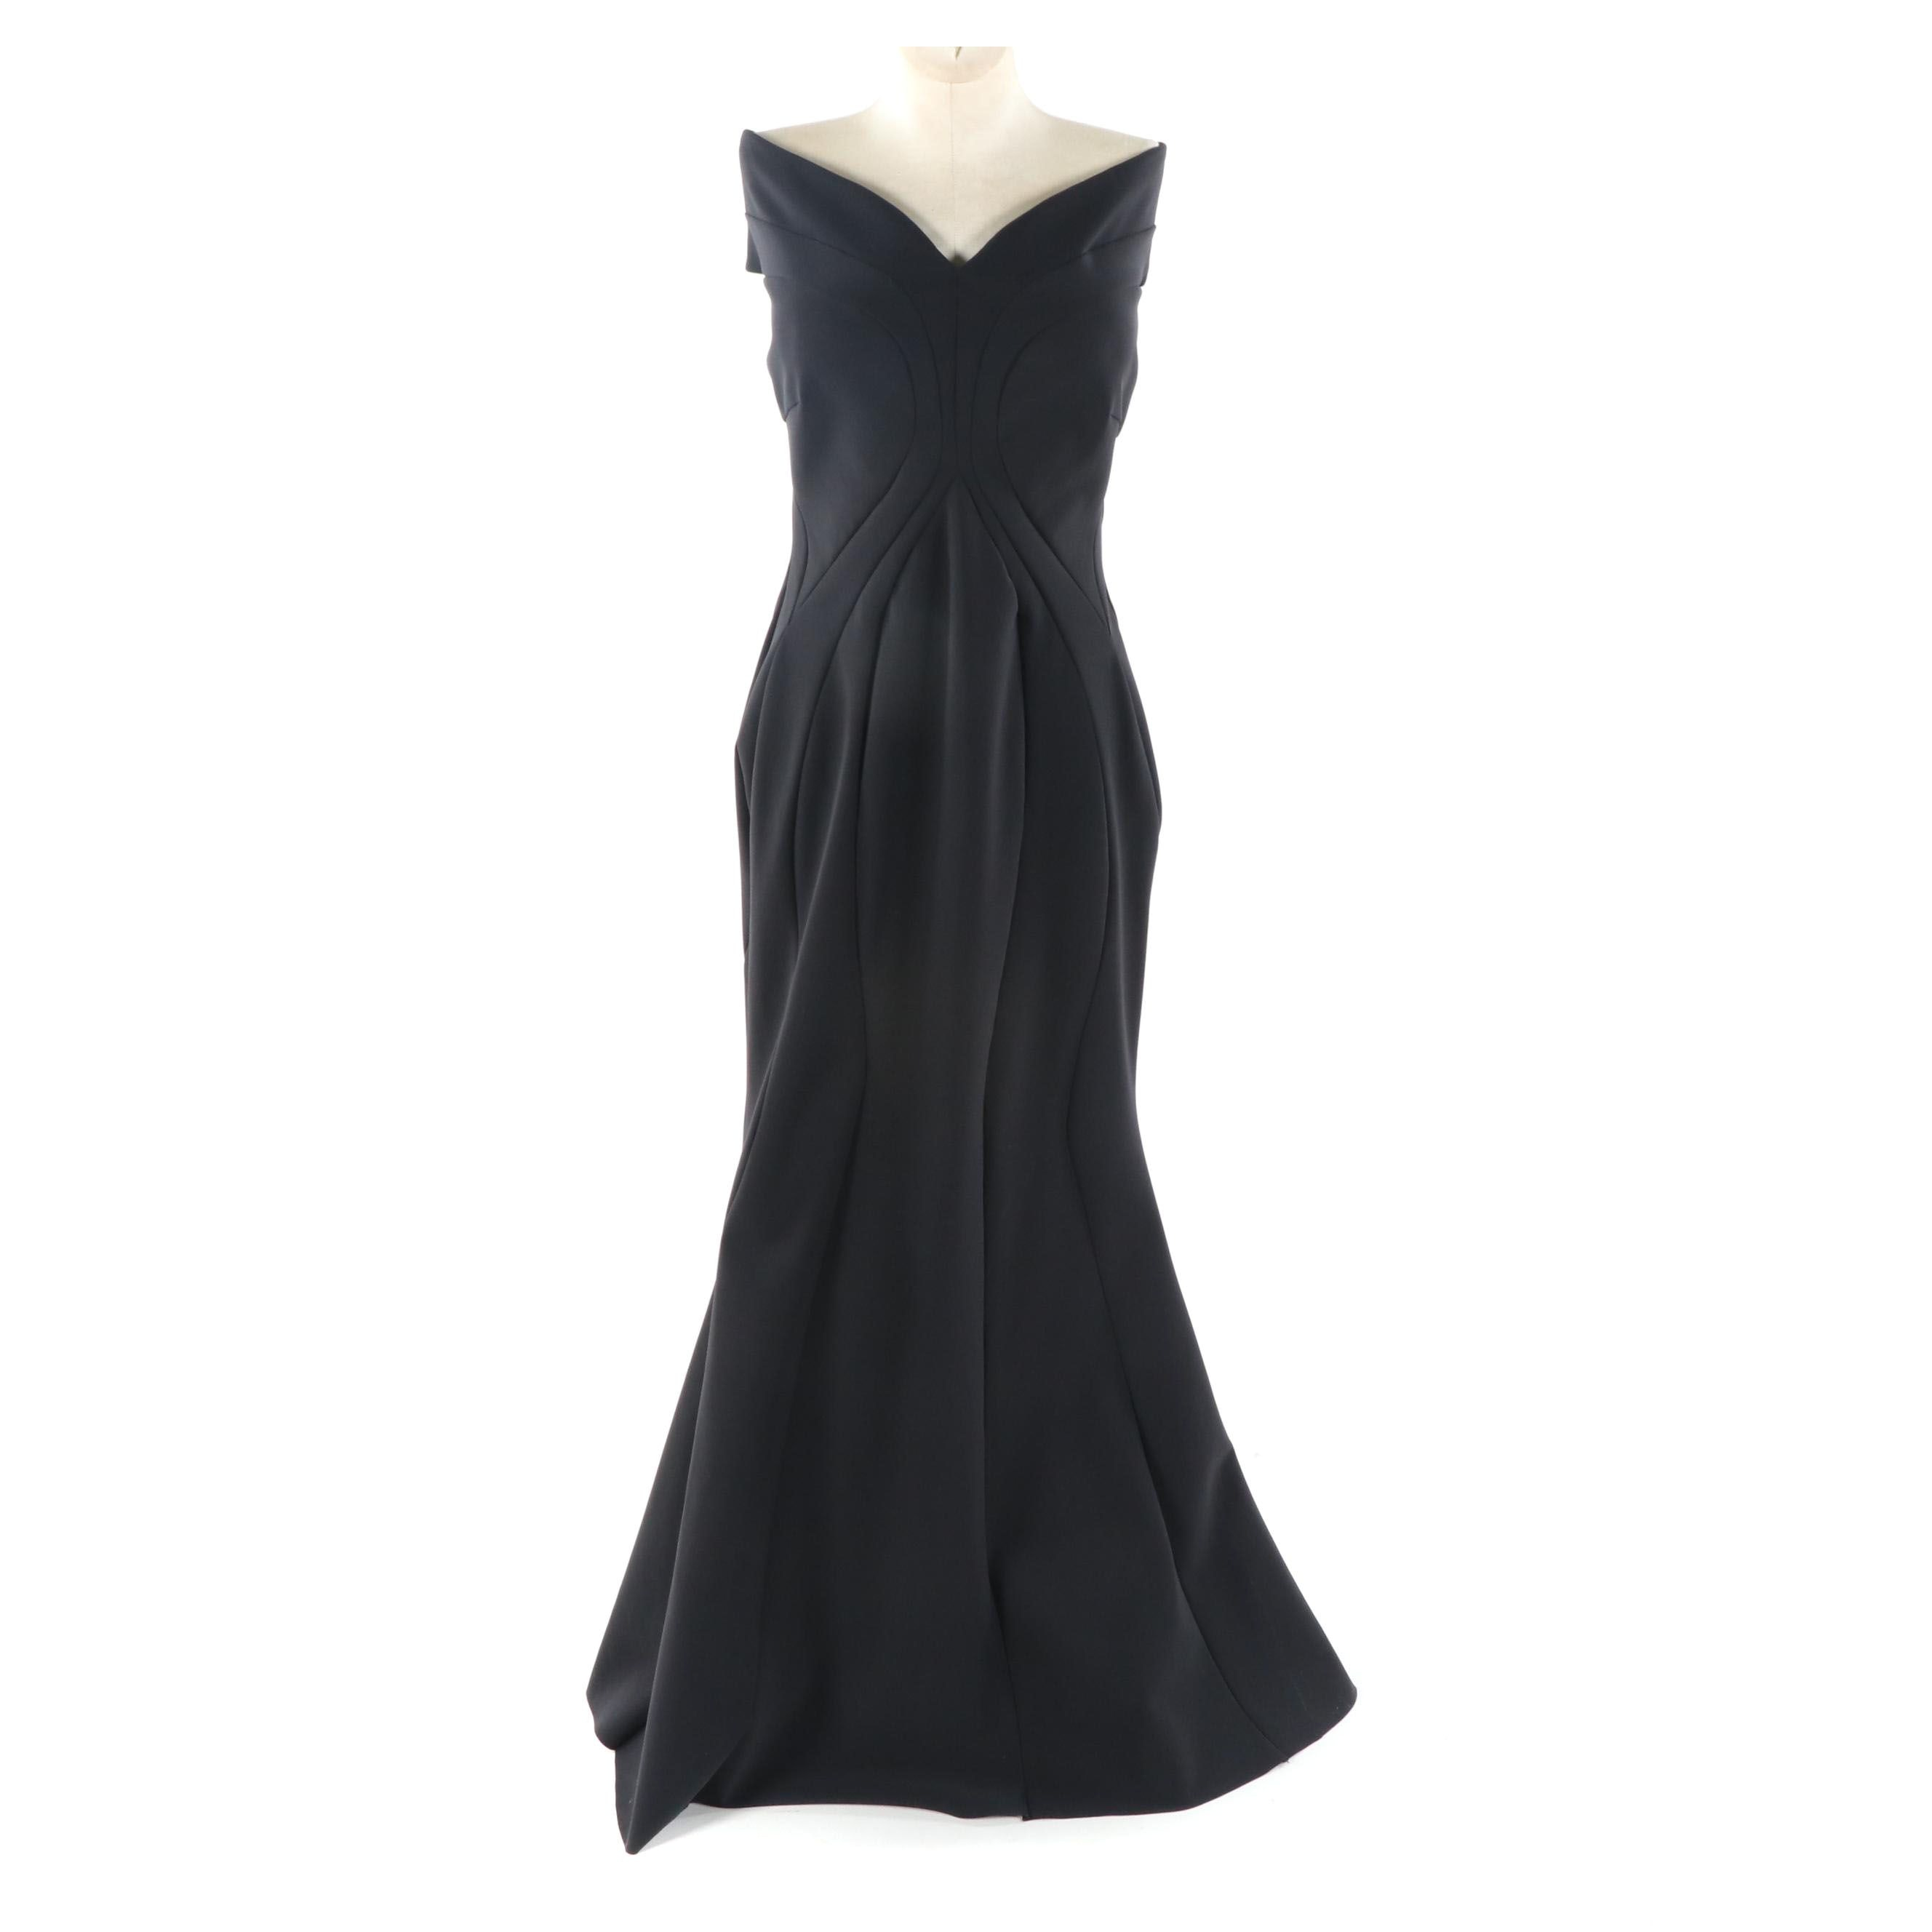 Chiari Boni Couture Black Evening Gown, Made in Italy